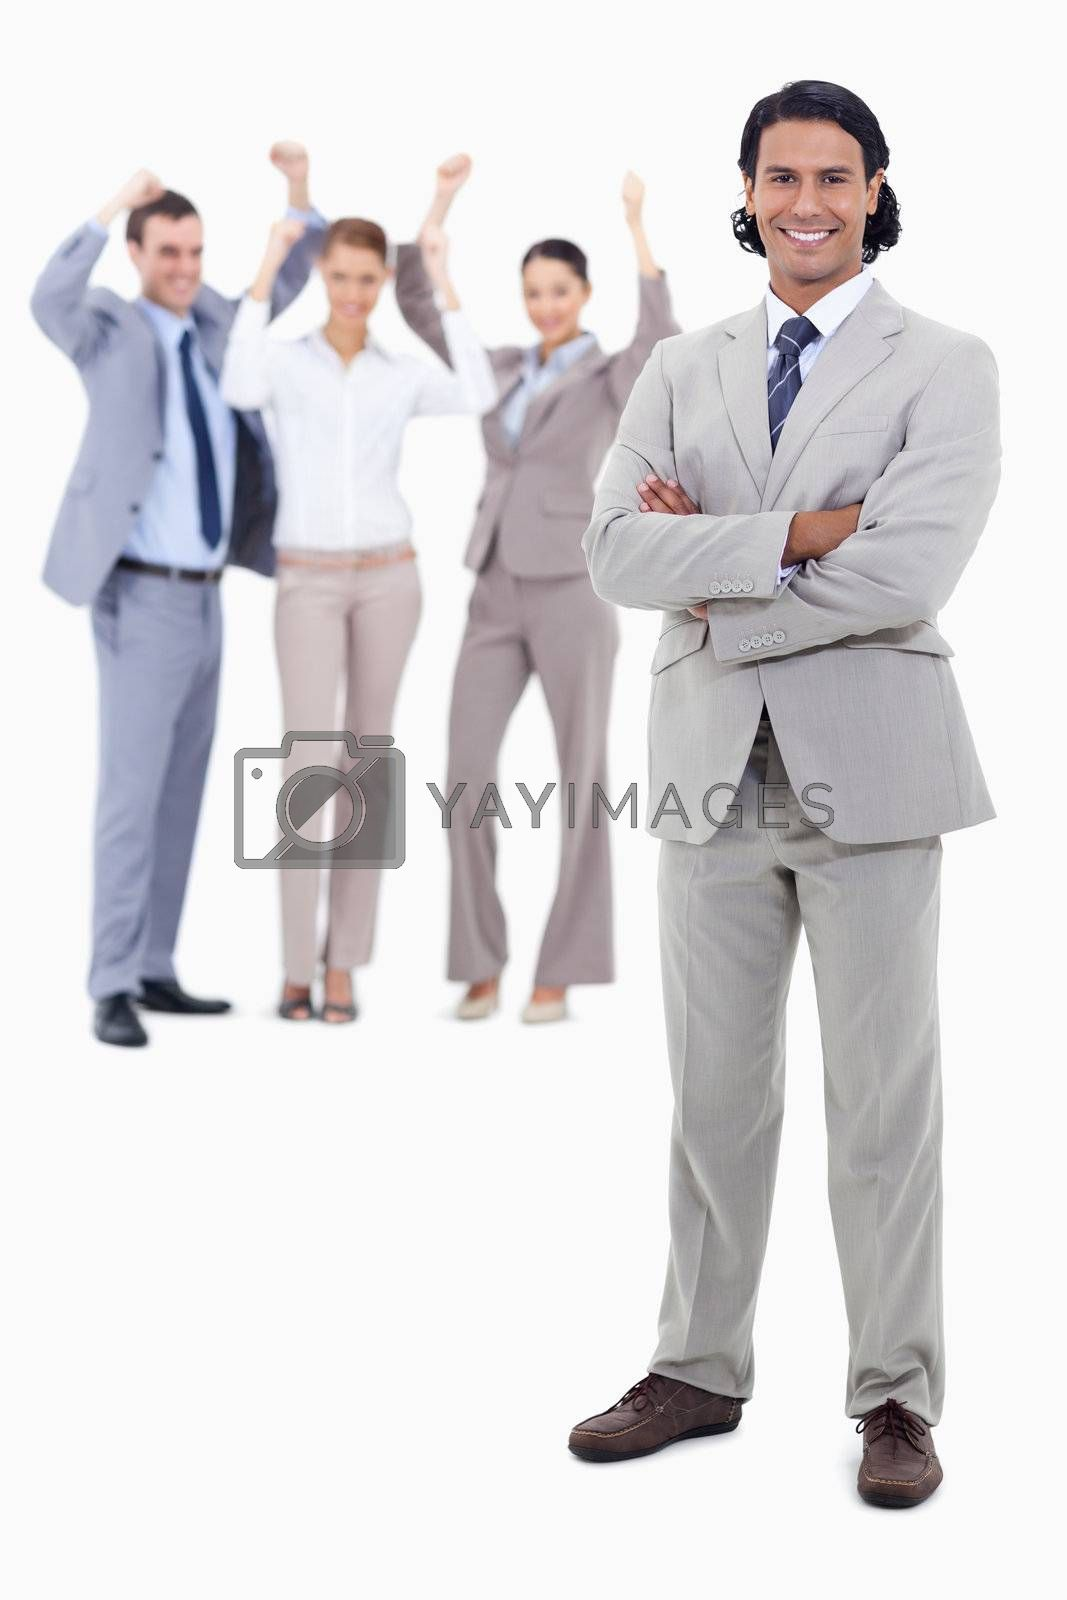 Businessman smiling and crossing his arms with cheering people behind him against white background